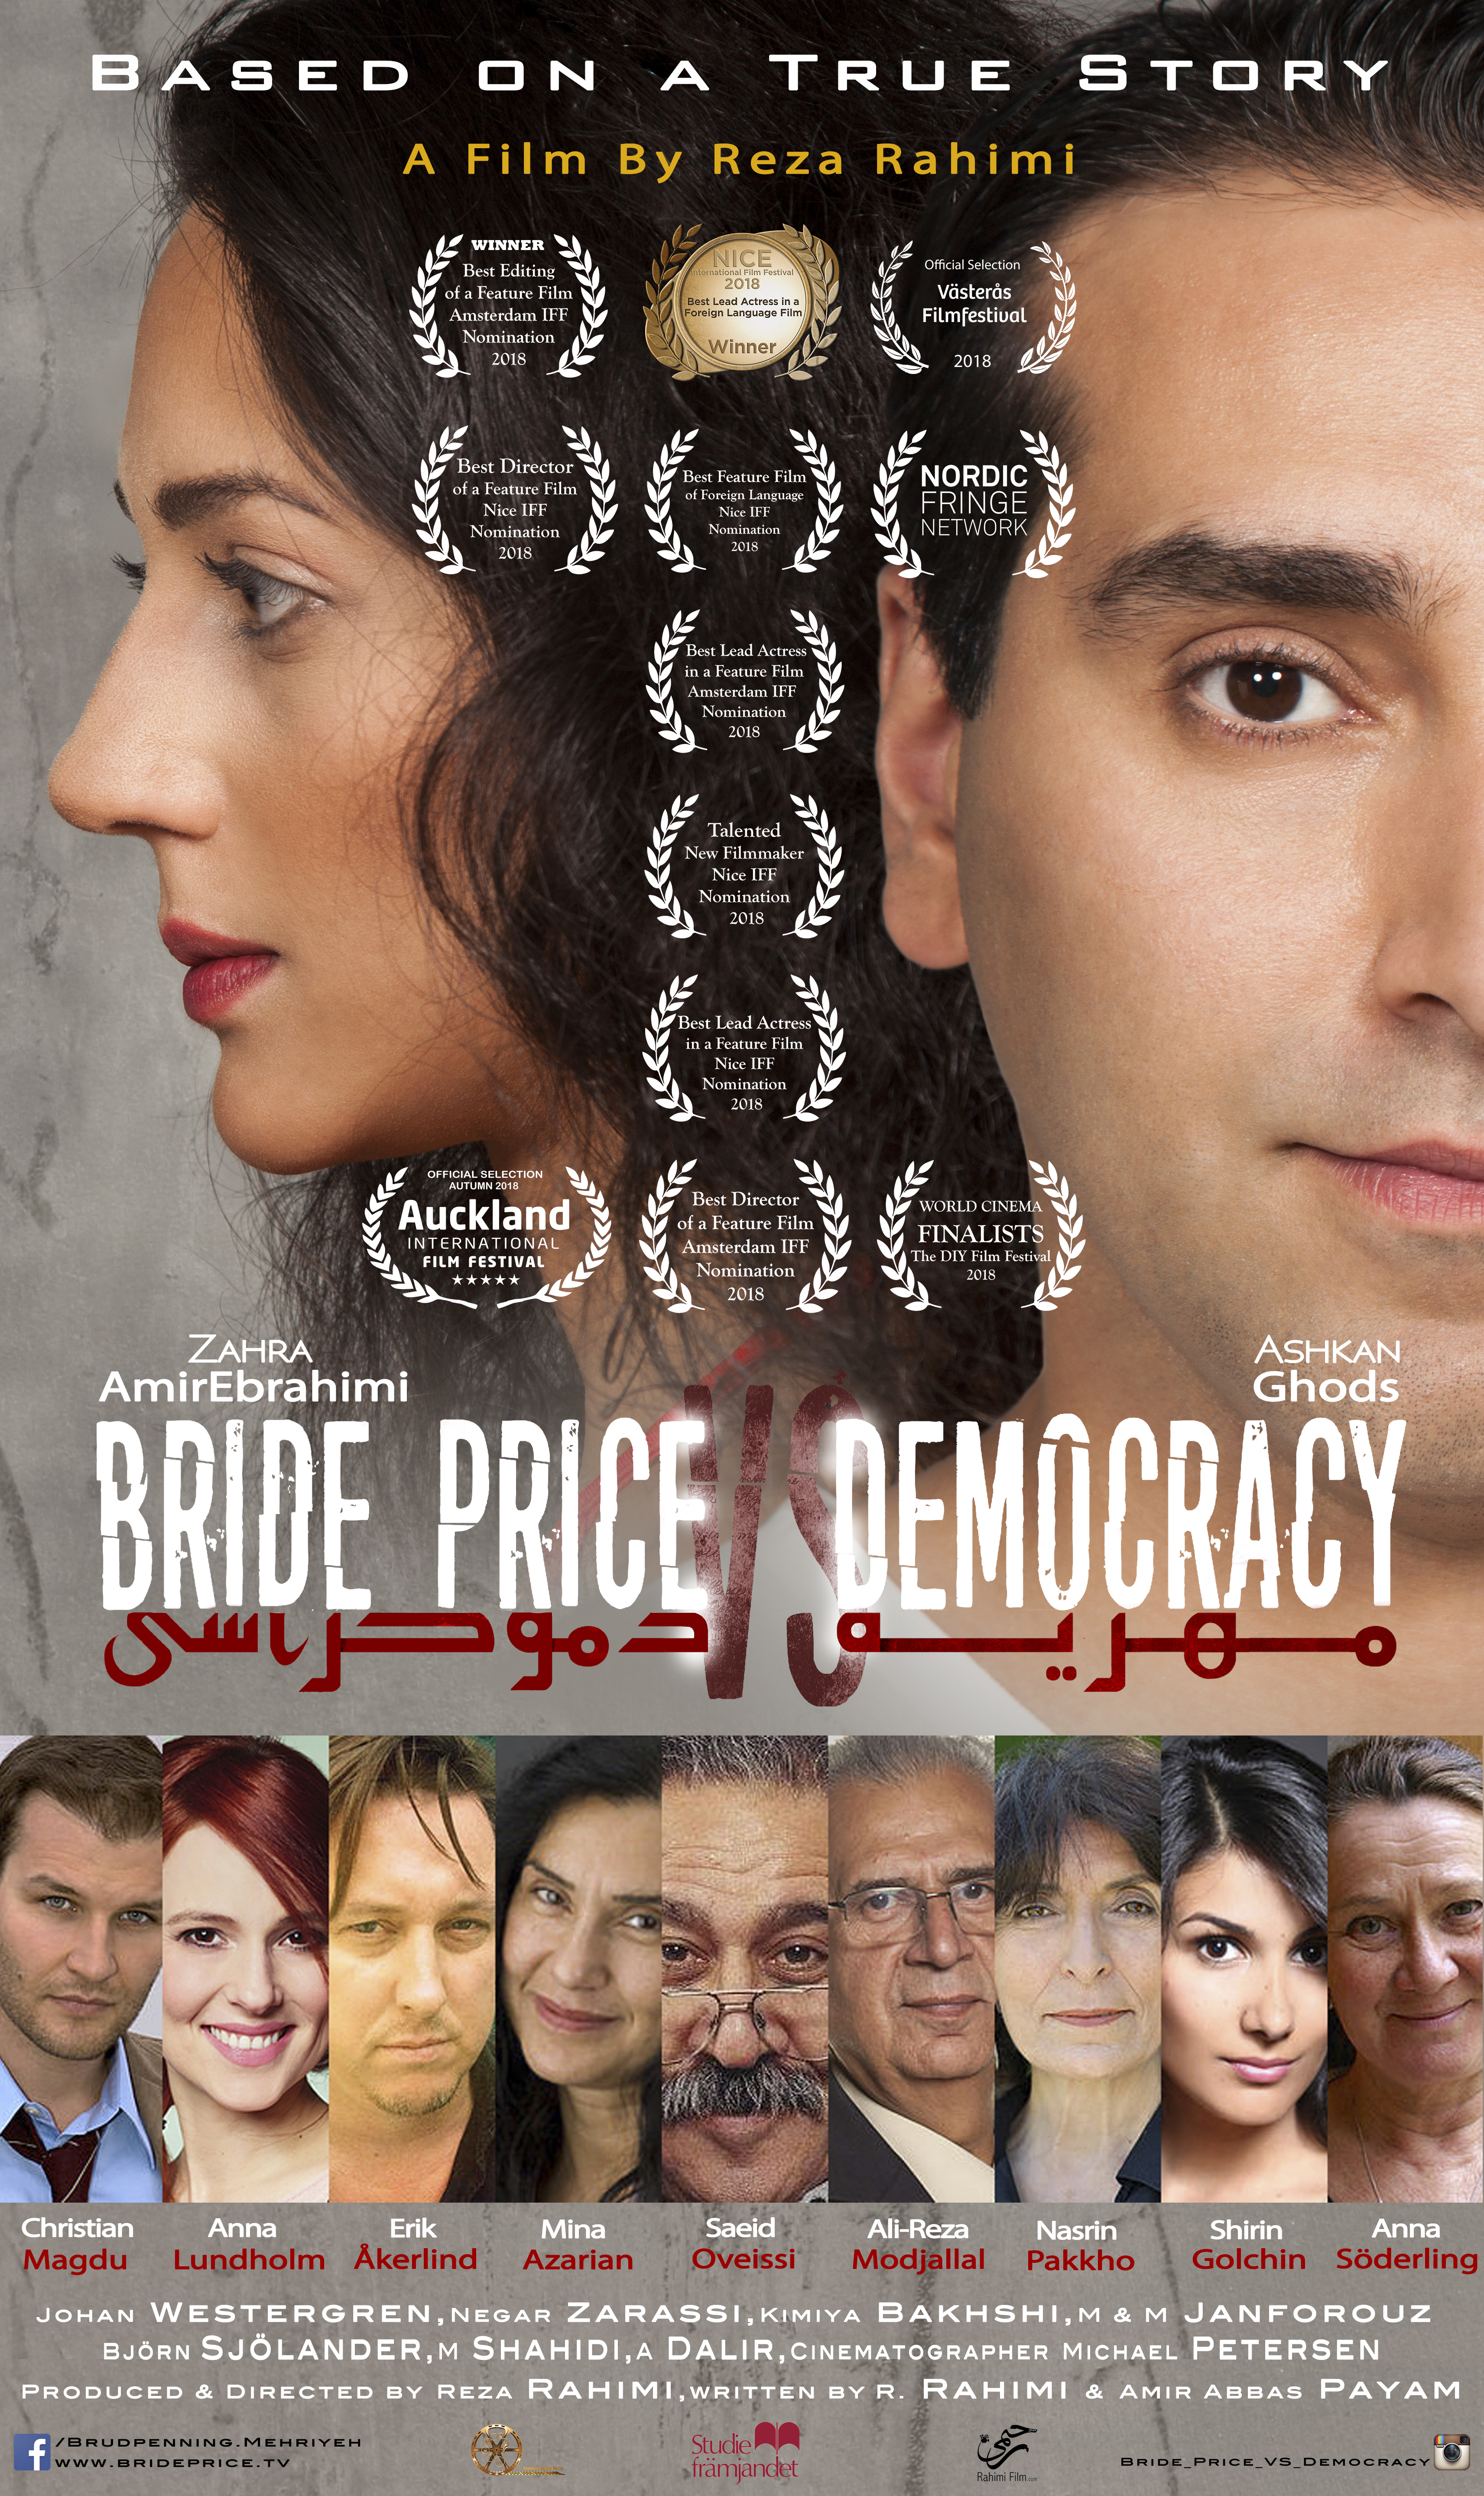 Bride Price_POSTER_1_Brudpenning